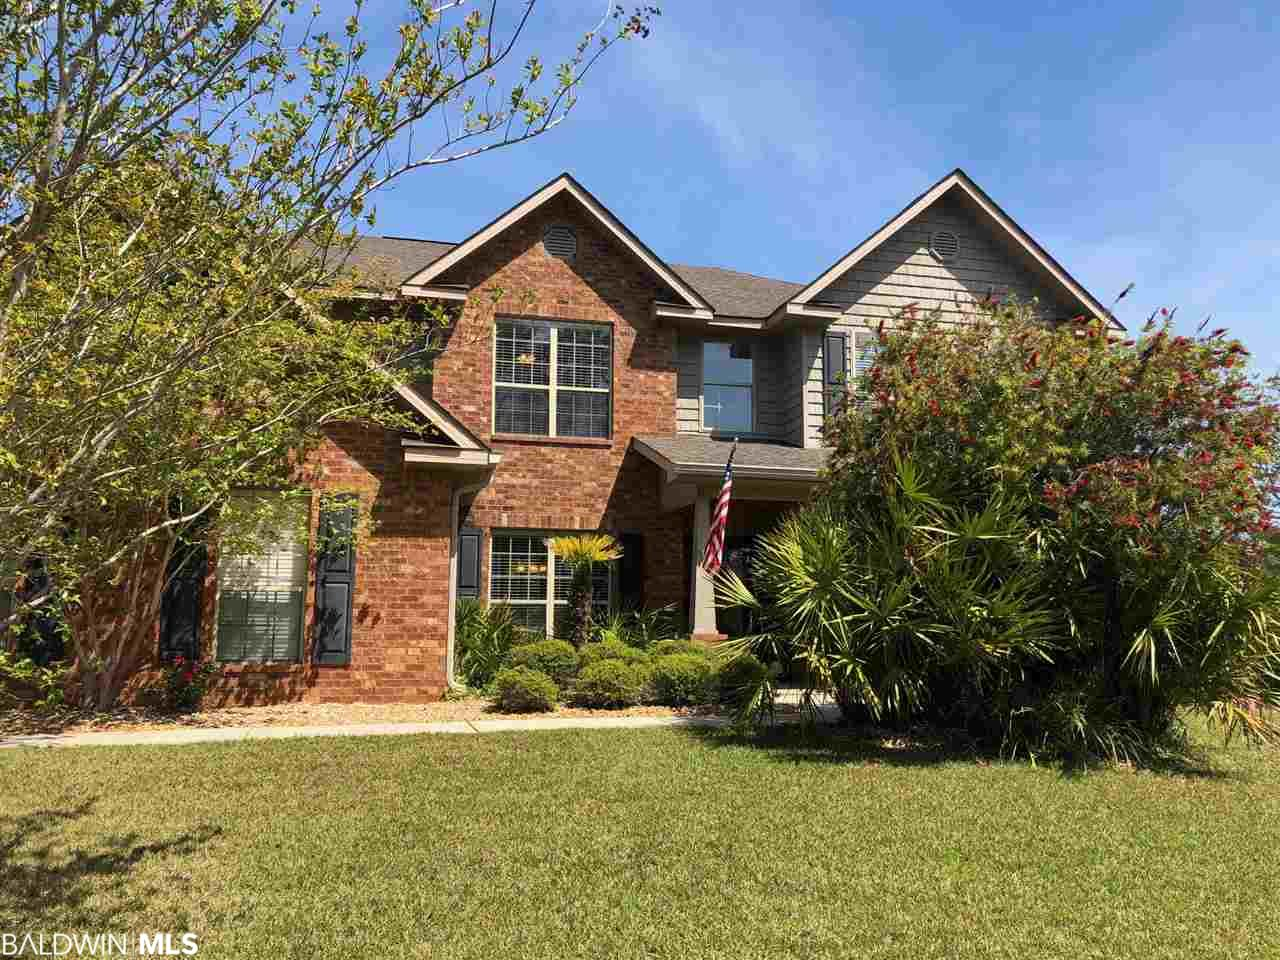 407 Swaying Willow Avenue, Fairhope, AL 36532